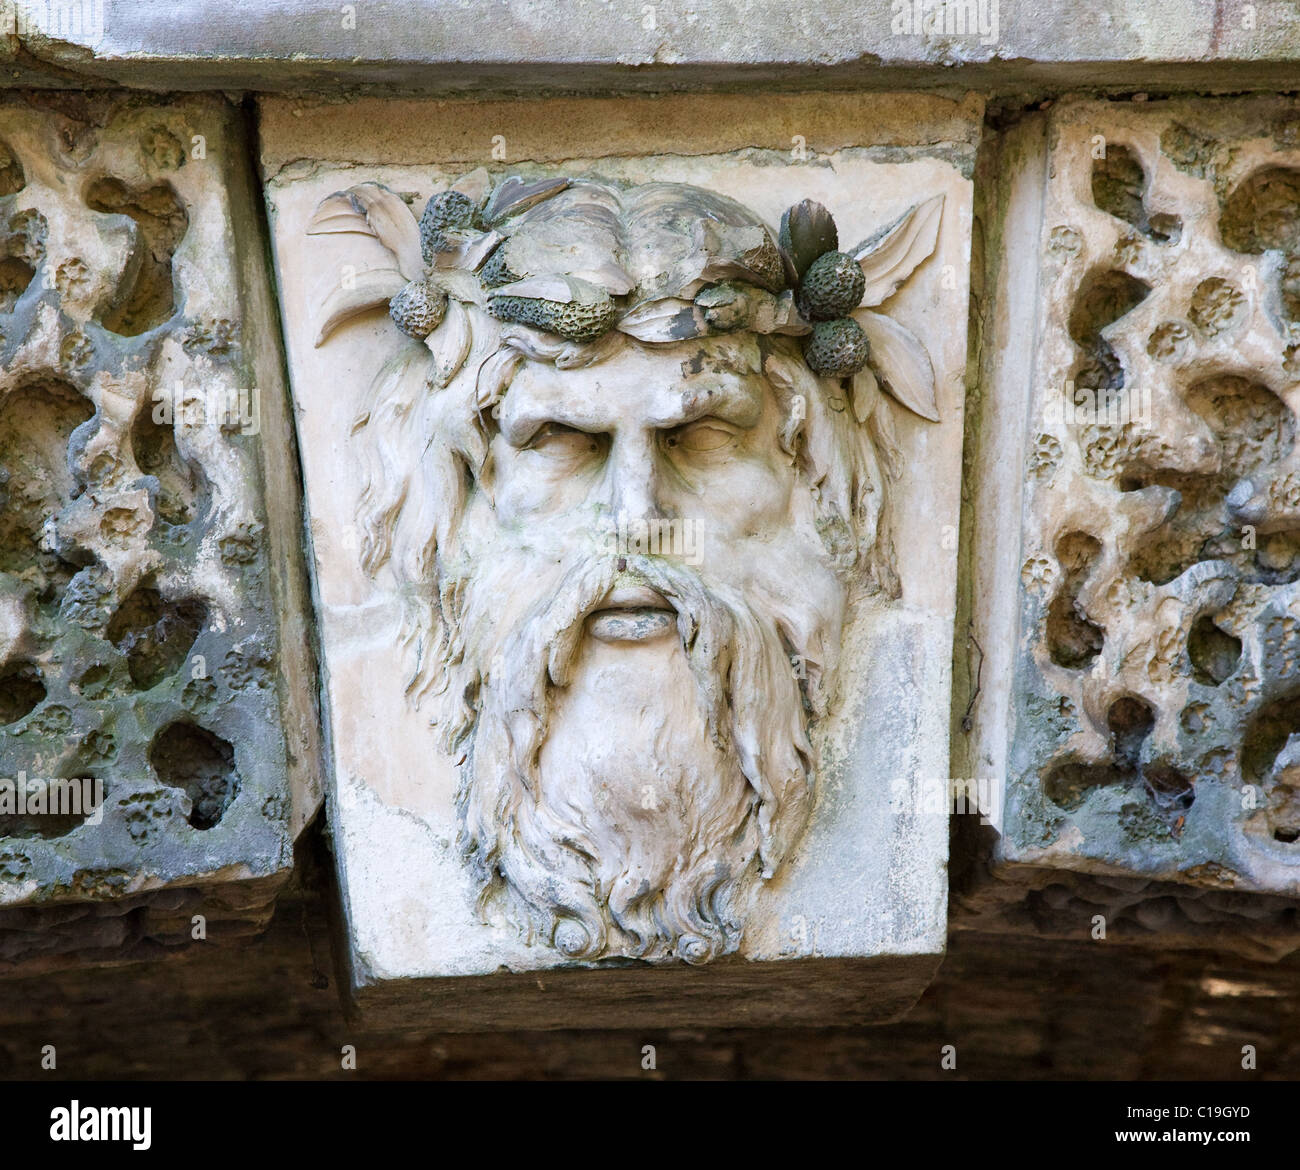 Druids head forming the keystone of an arched bridge in Croome Park in Worcestershire - Stock Image